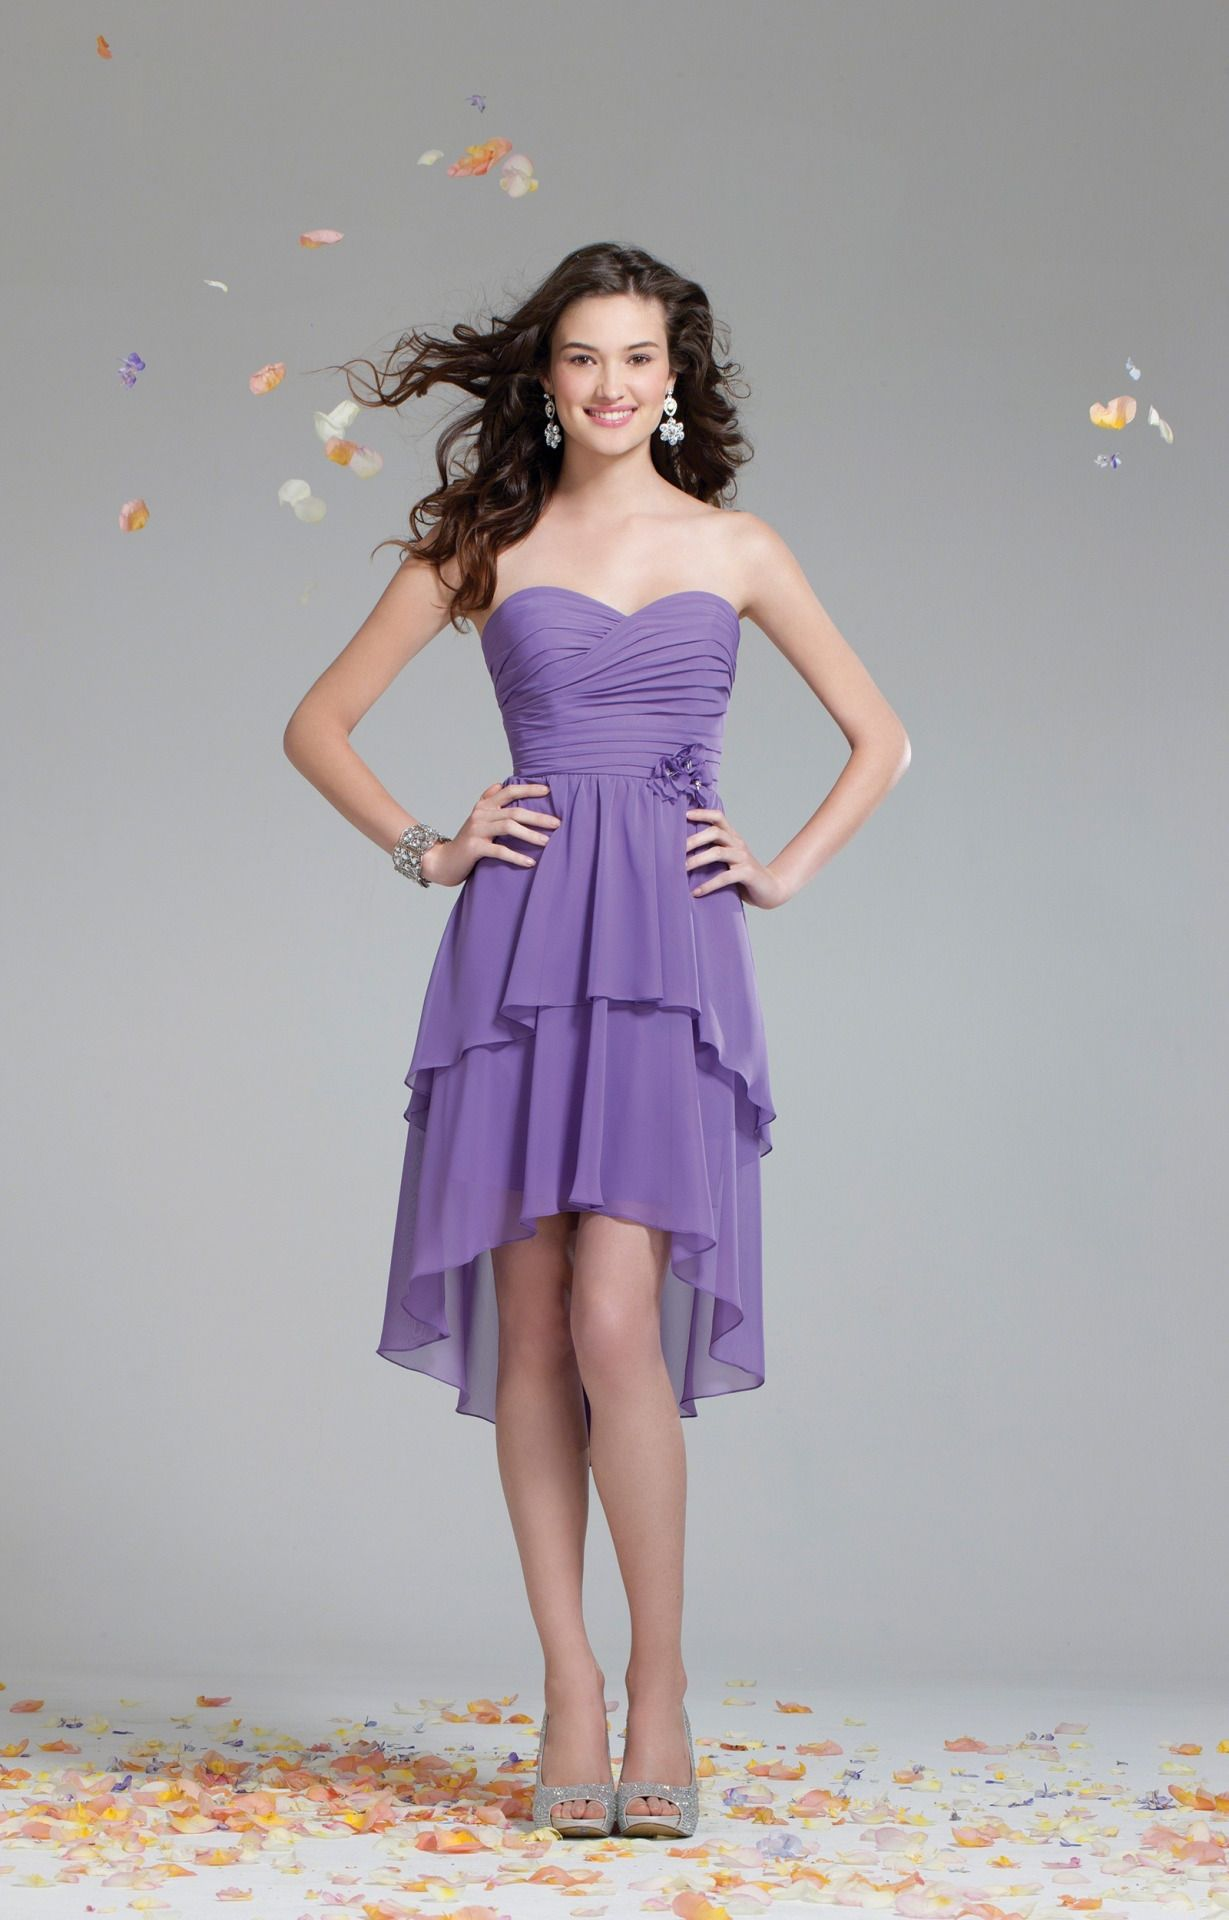 Dorable Vestidos De Descuento Alfred Angelo Dama De Honor Ideas ...